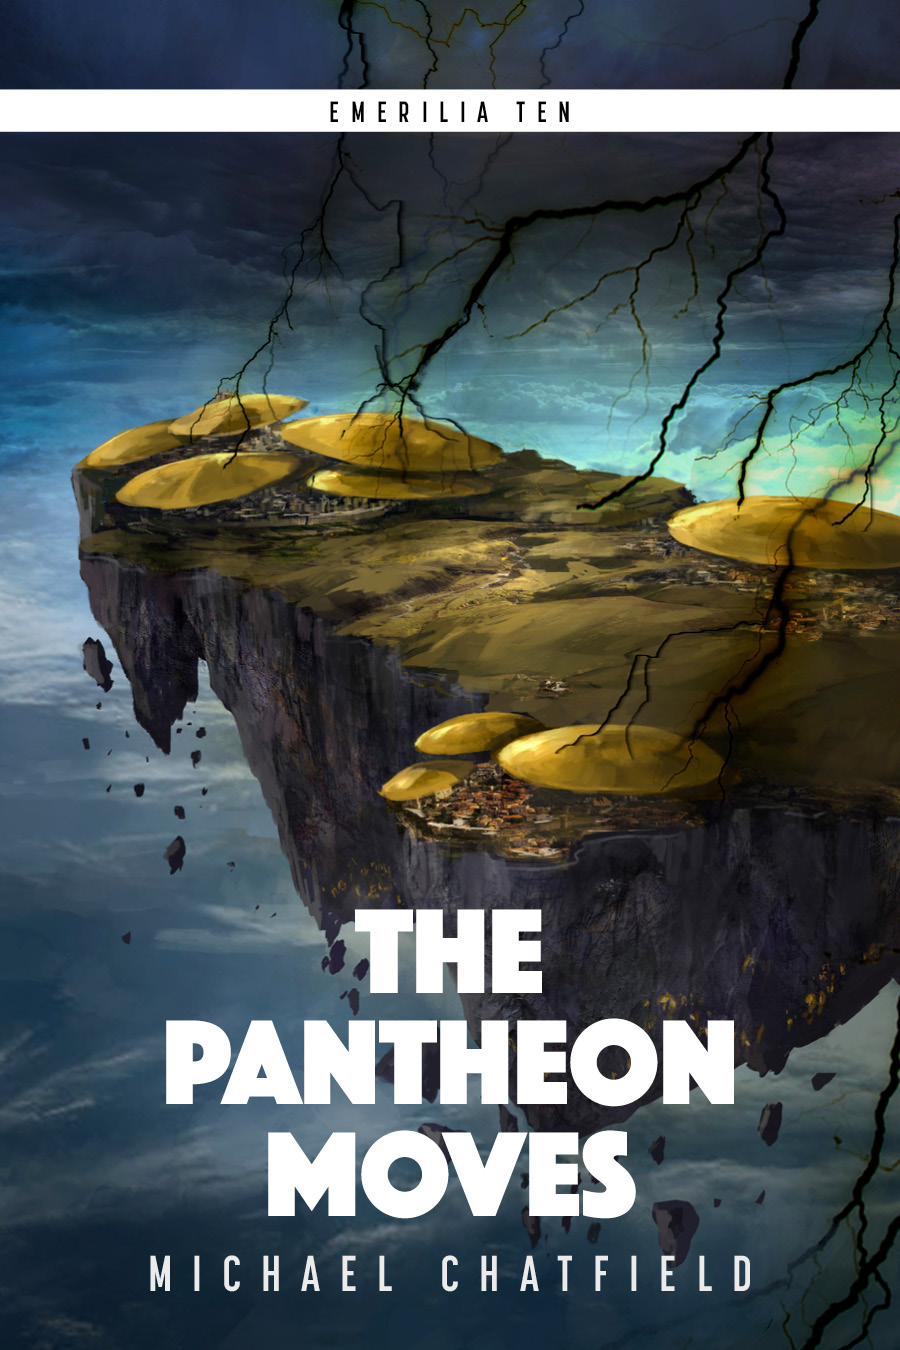 The Pantheon Moves